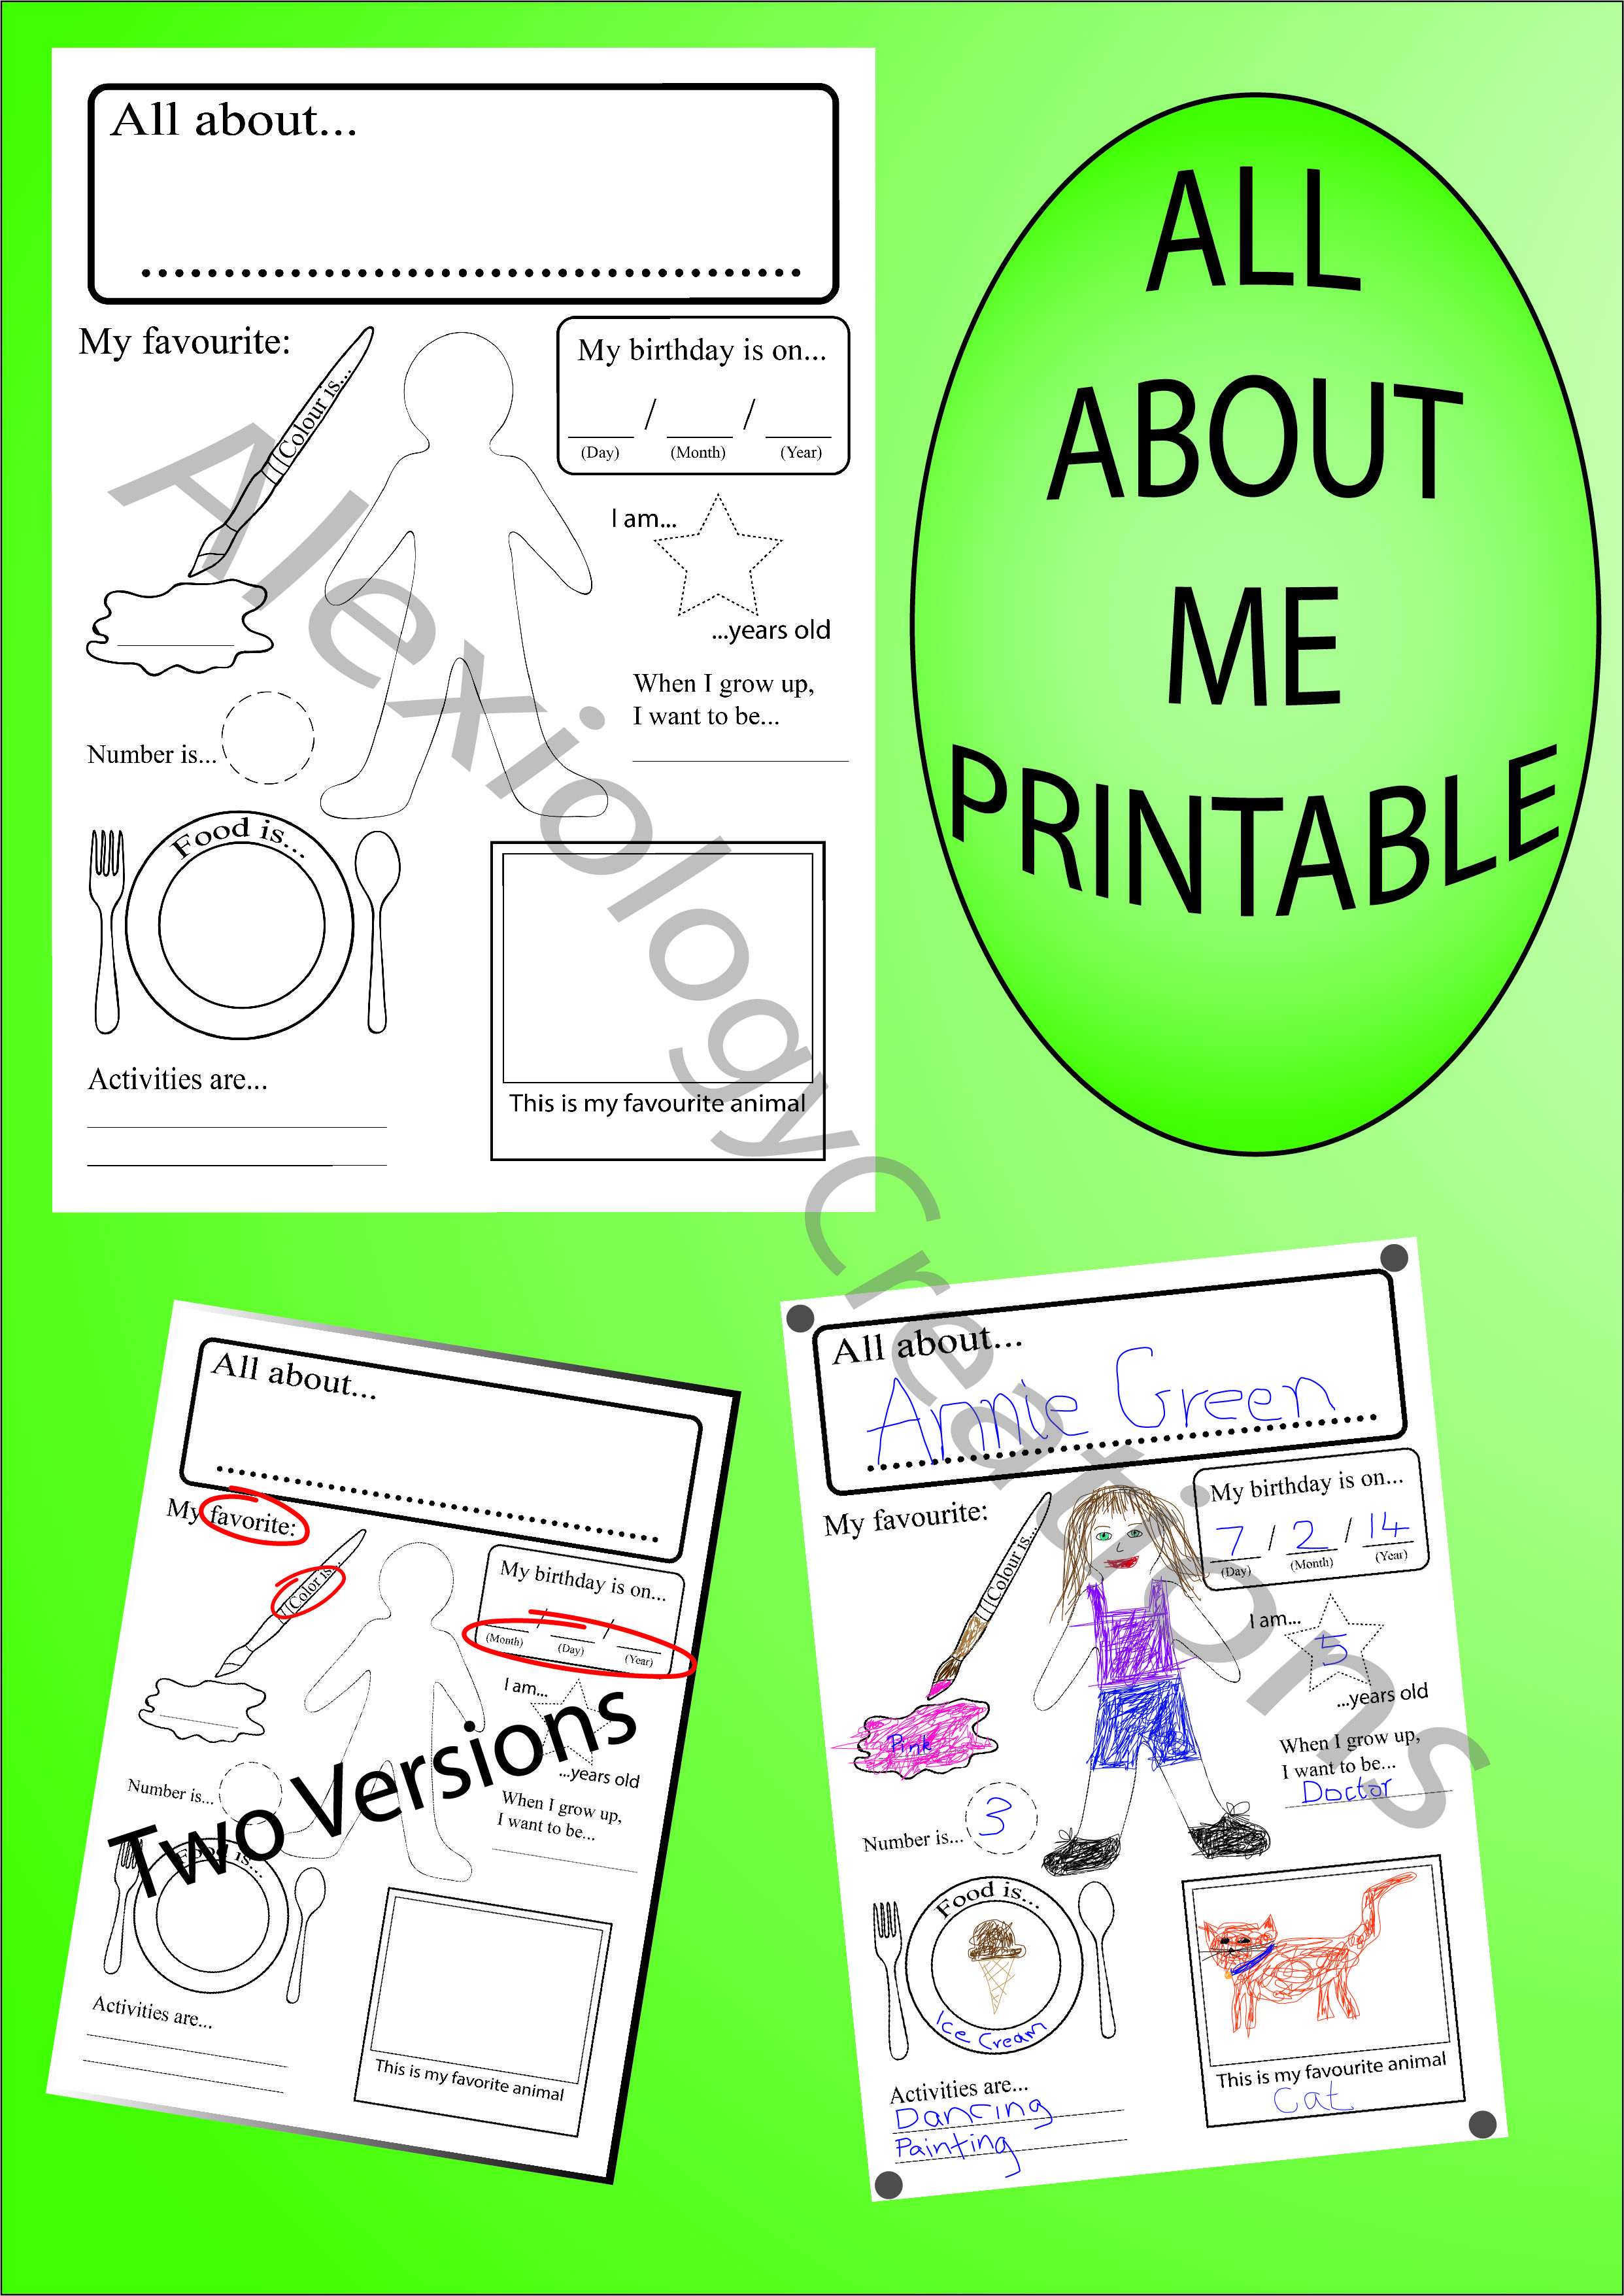 image regarding All About Me Page Printable titled All with regards to me, printable, electronic obtain